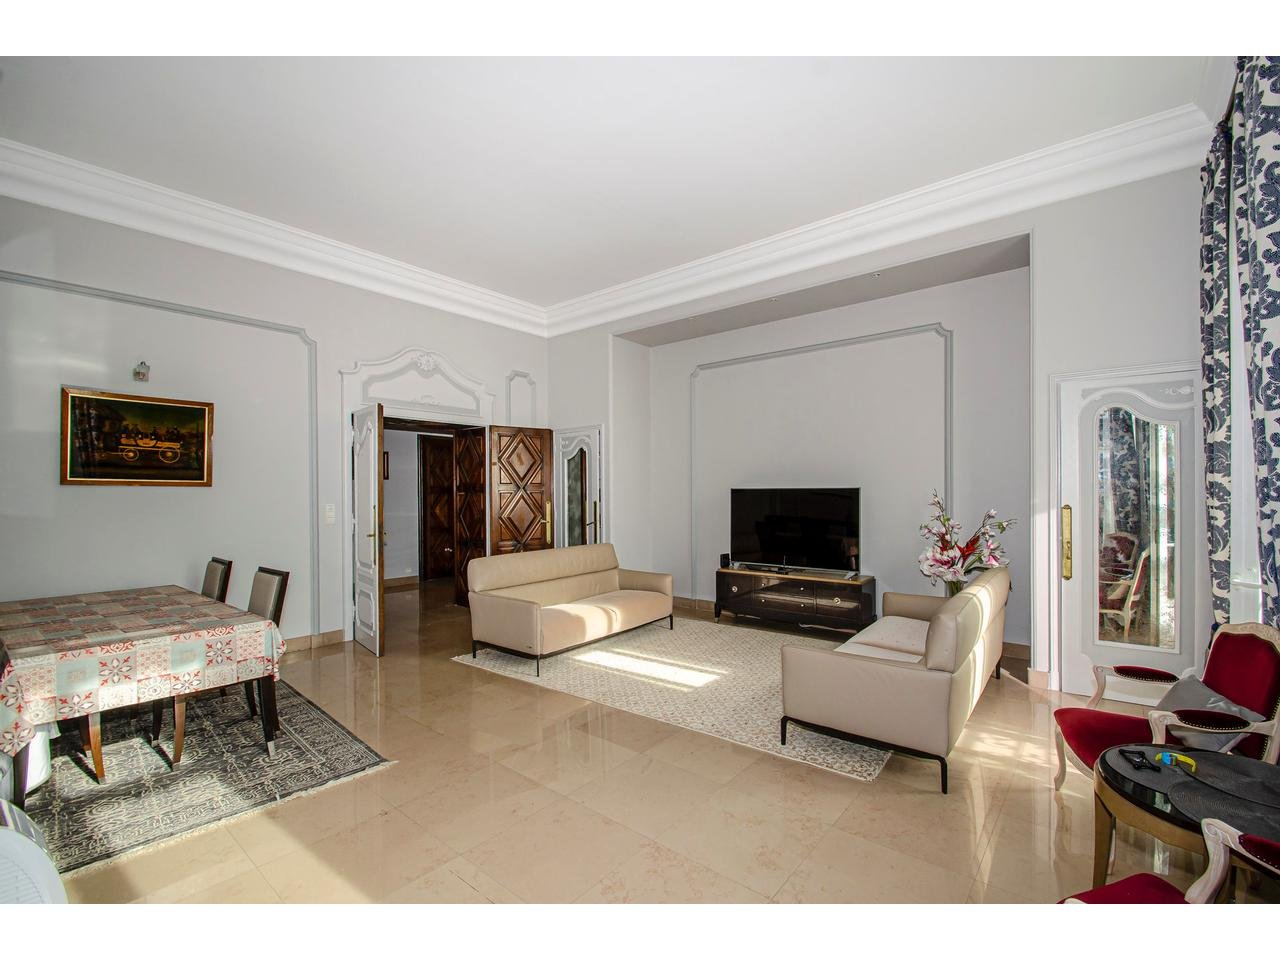 Appartement  4 Rooms 153m2  for sale   990 000 €